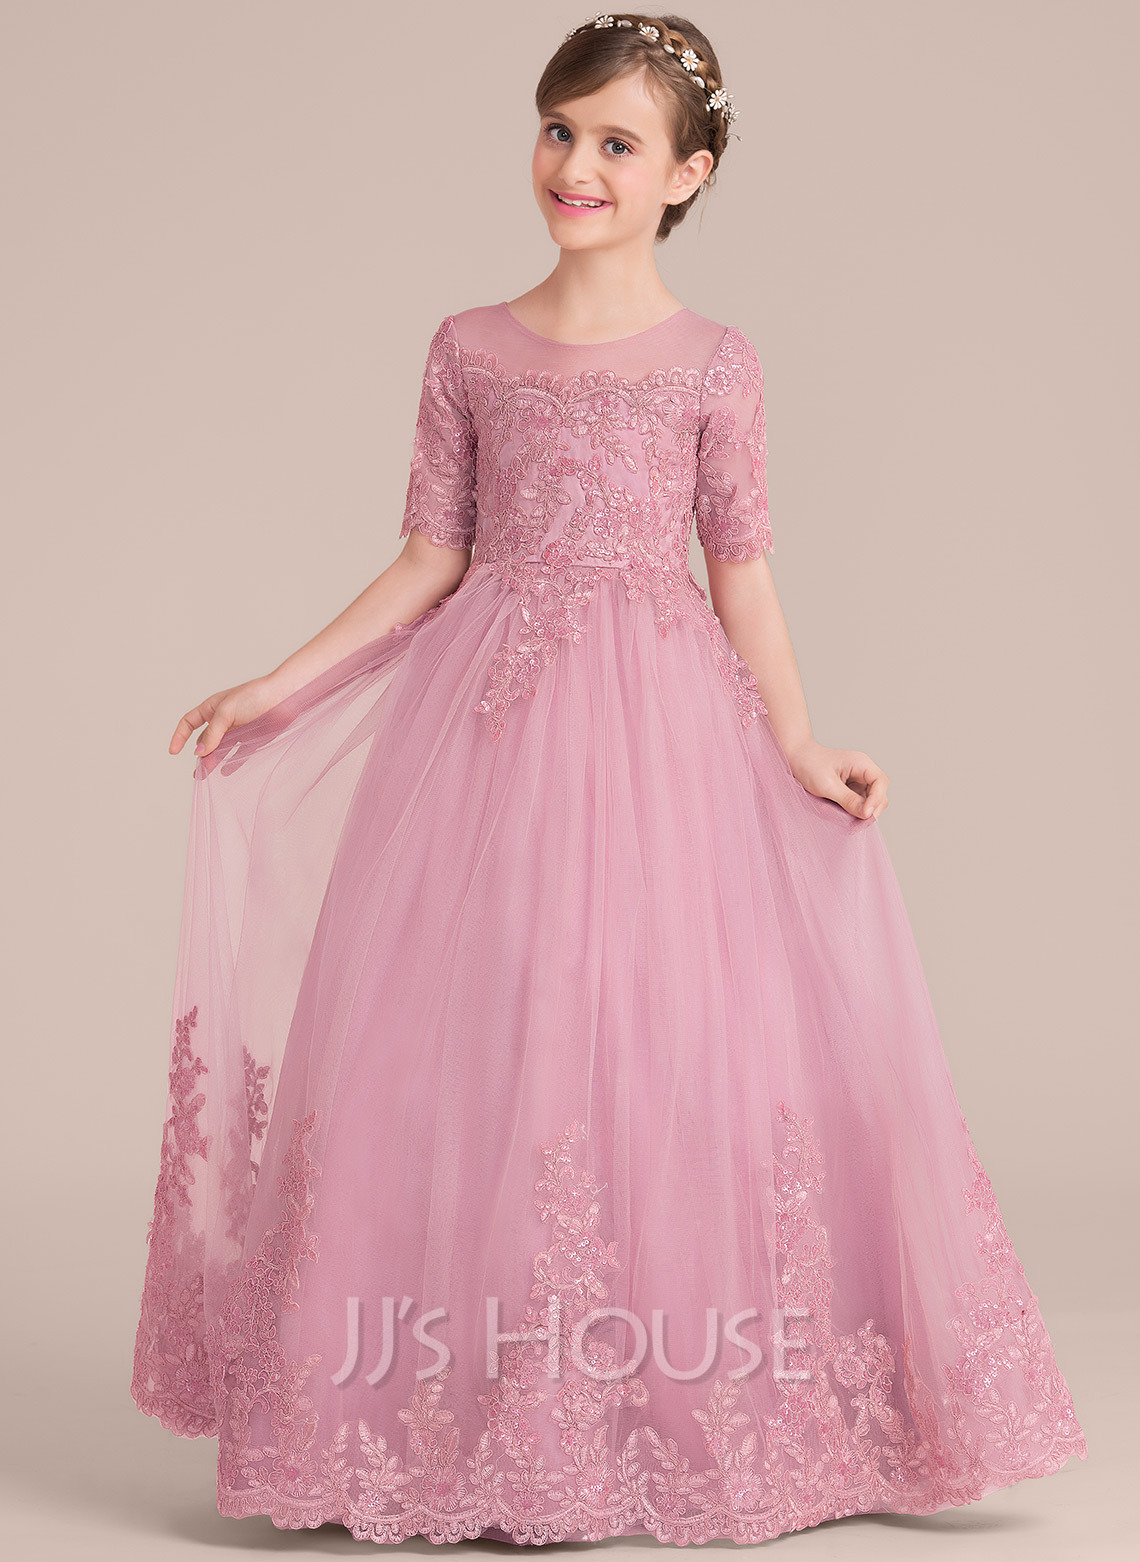 Party Dress with Tulle